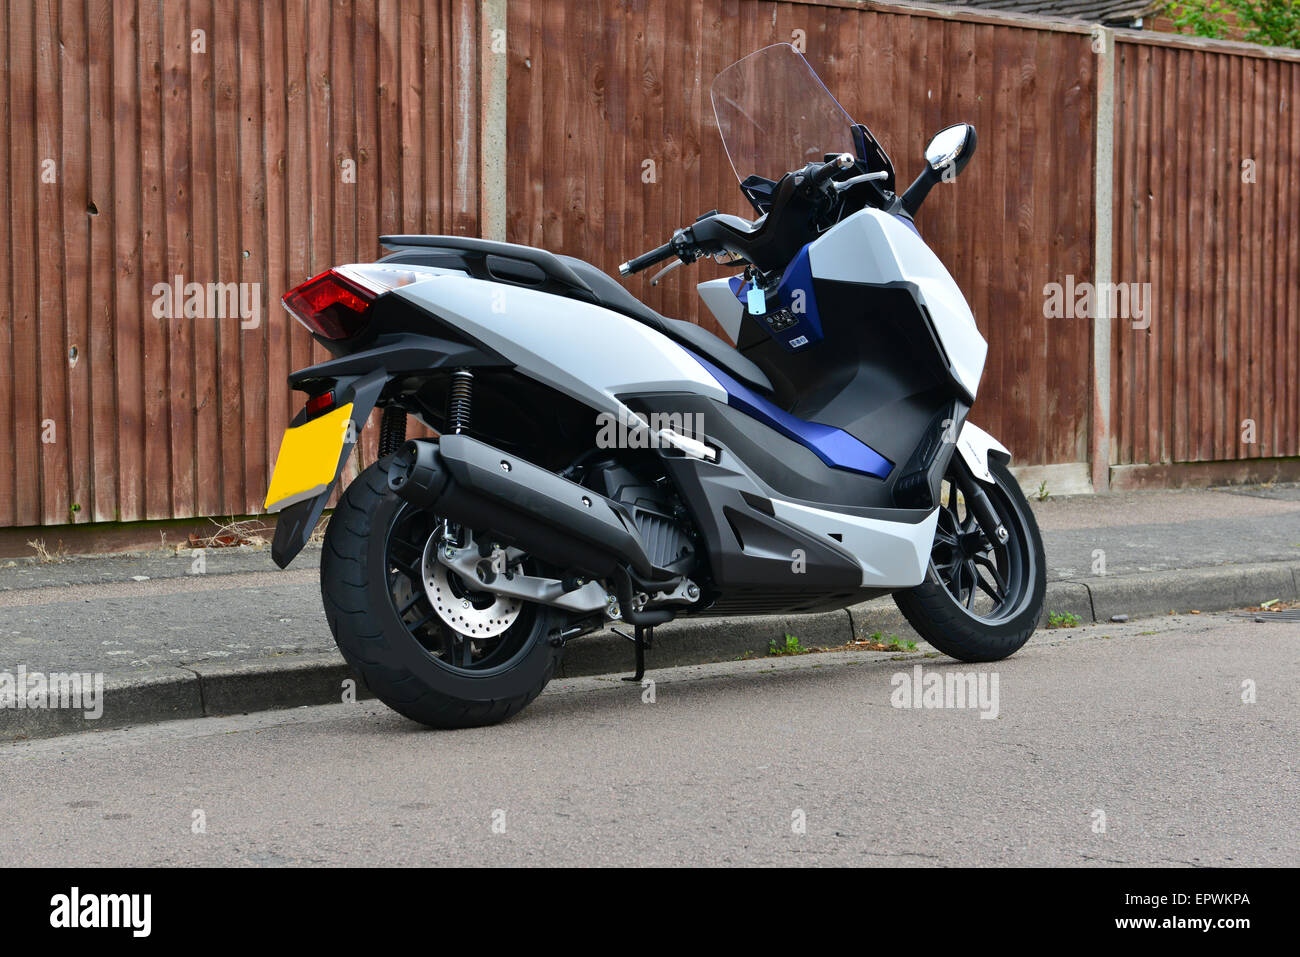 honda forza 125 scooter stock photo 82928226 alamy. Black Bedroom Furniture Sets. Home Design Ideas